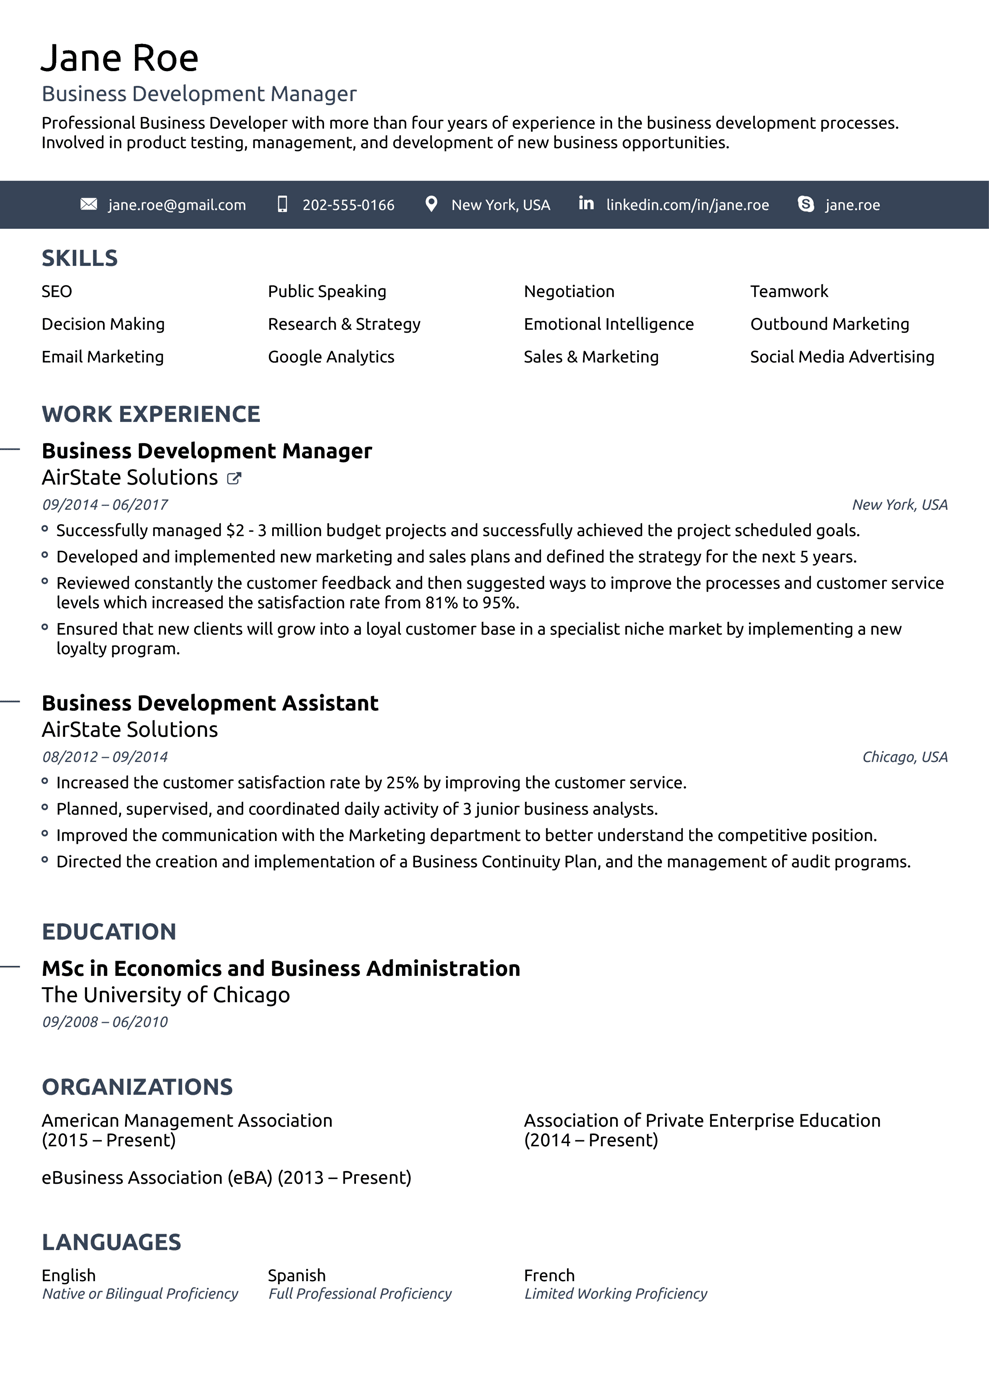 Examples Of A Basic Resume | Resume Templates For 2019 Free Novoresume